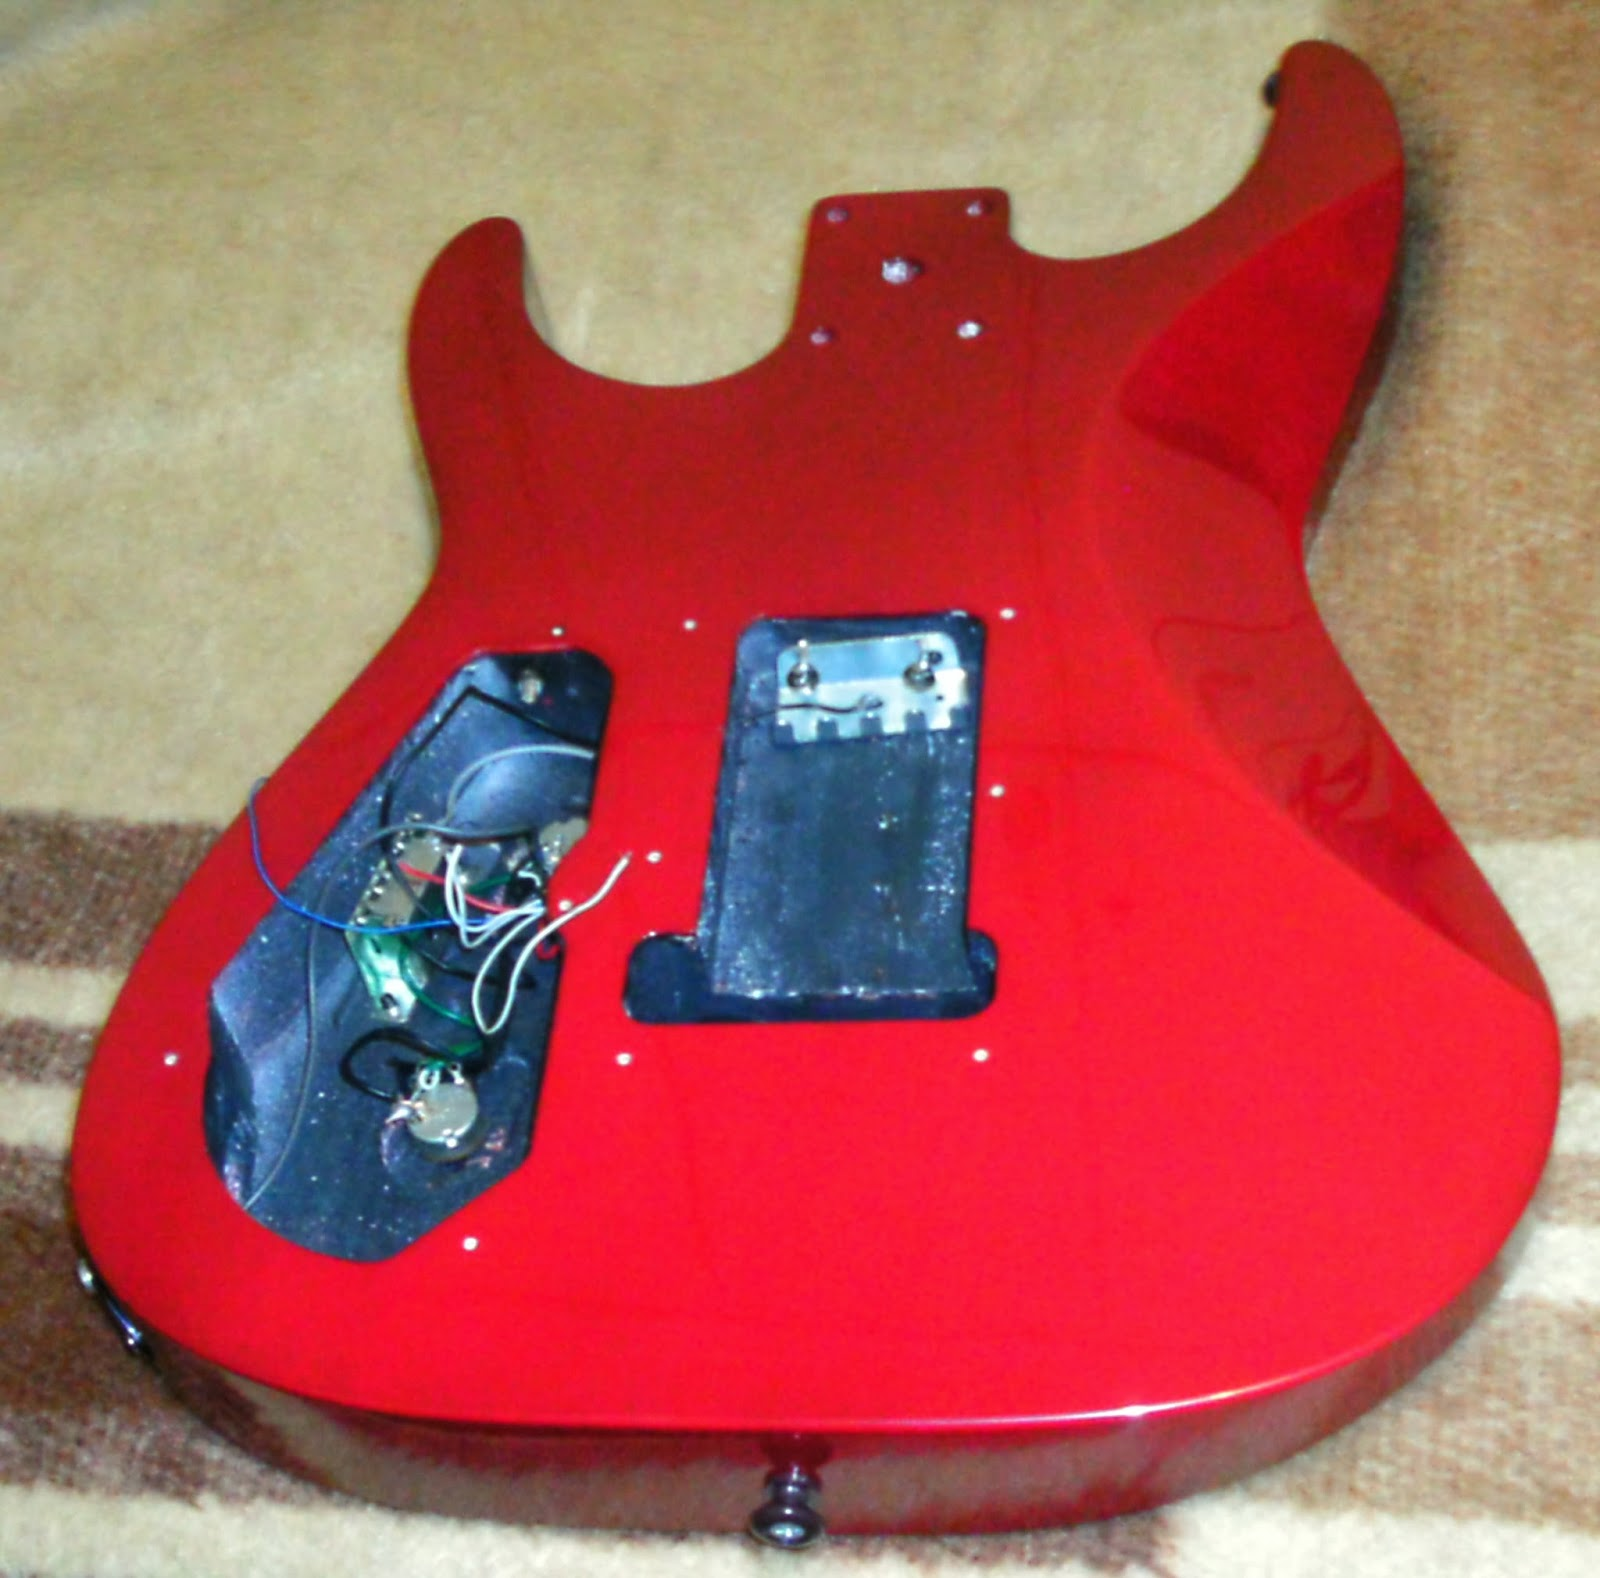 Jackson strat project guitar dreamer this is a versatile guitar and its perfect for solos and rhythmic playing its not an ultra thin shredding guitar but its pretty playable publicscrutiny Images